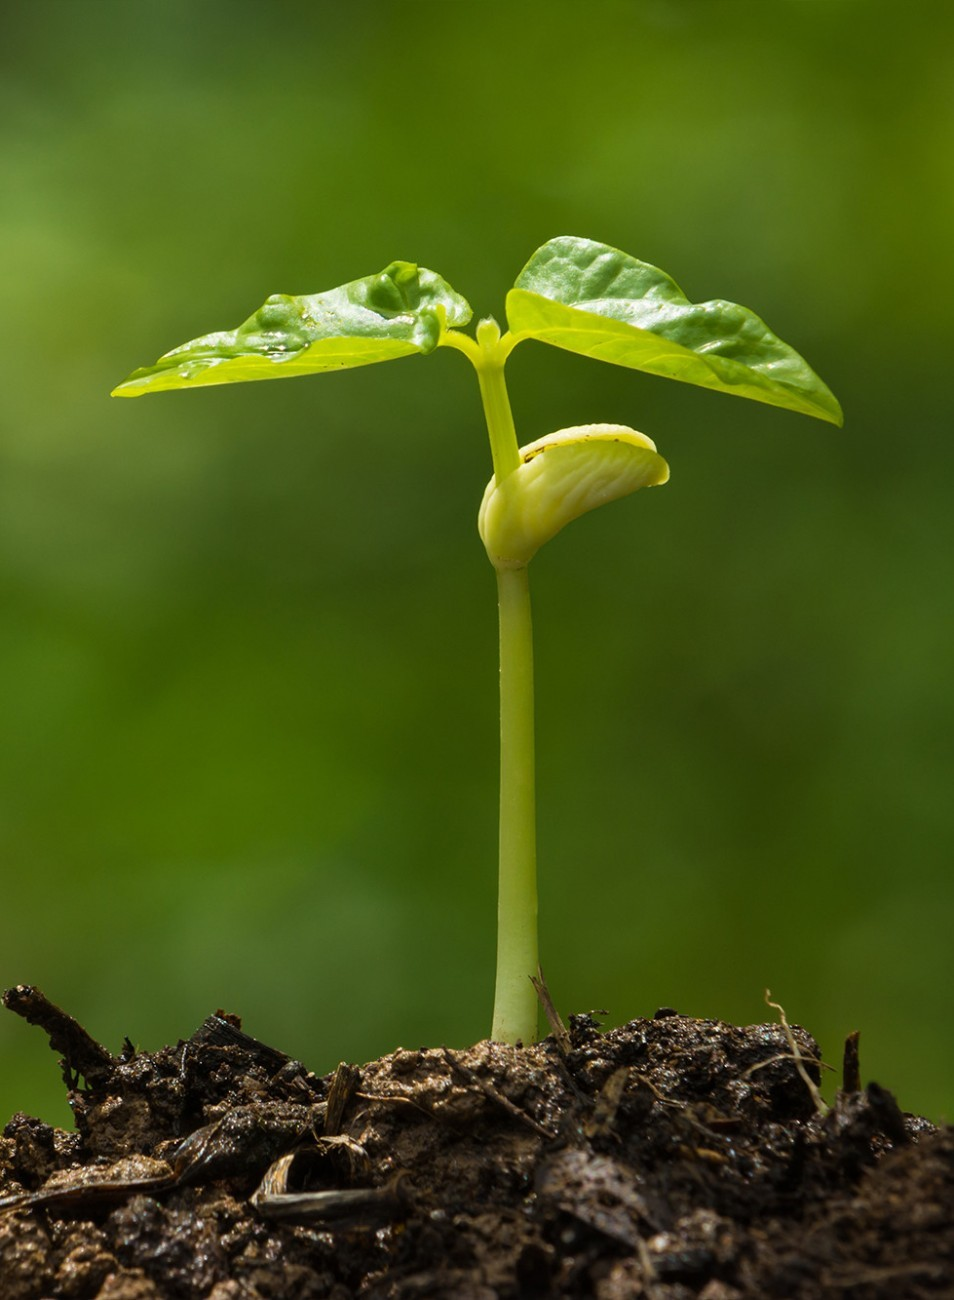 Seed Growing Plant